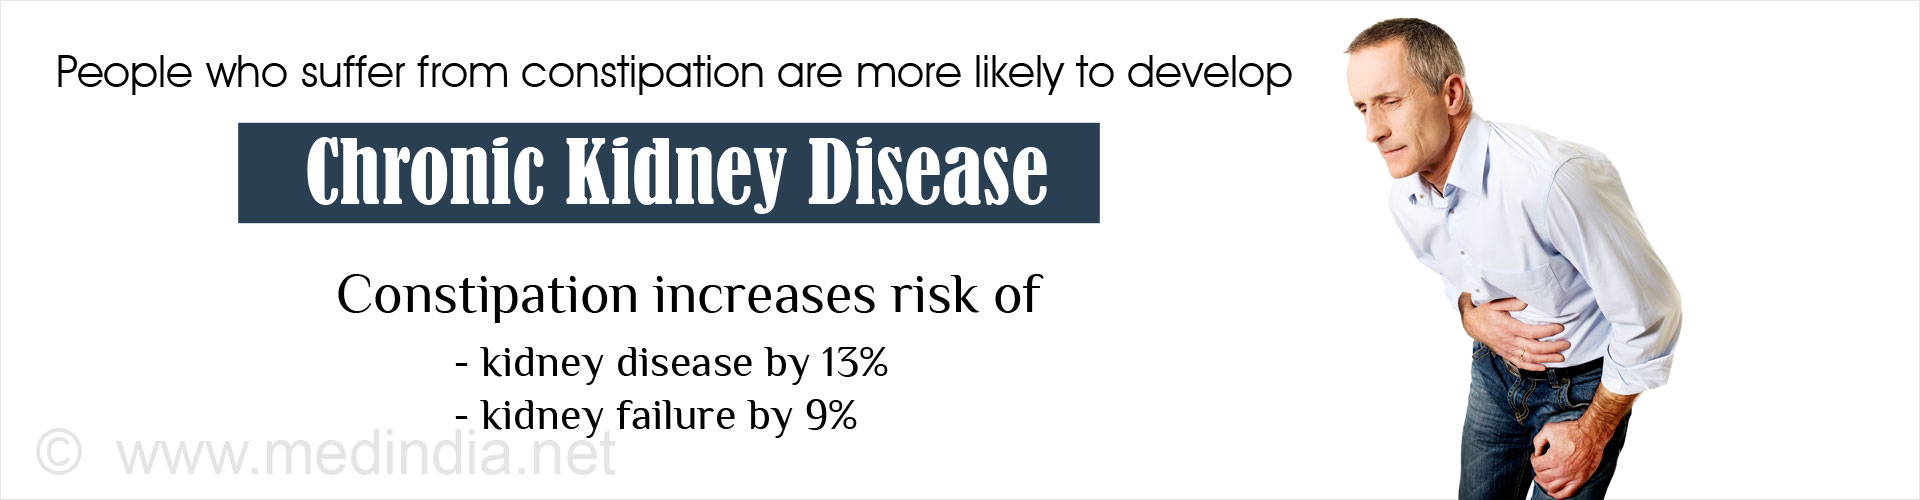 If You Suffer from Constipation You Have Higher Chances of Getting Kidney Disease